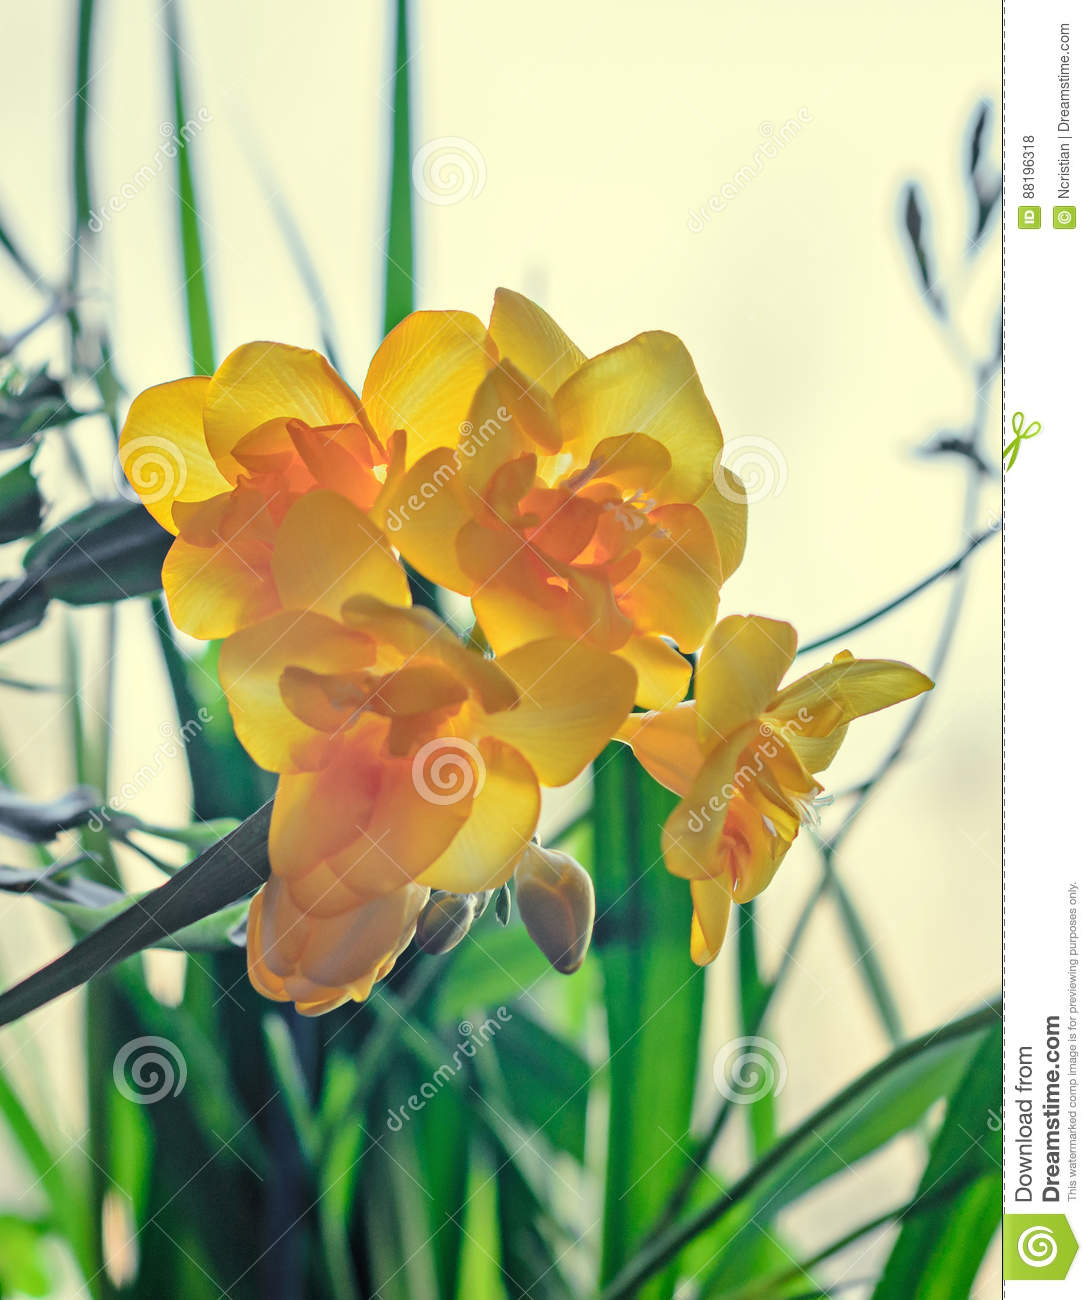 Yellow Freesia Flower Bokeh Background Green Leaves Close Up Stock